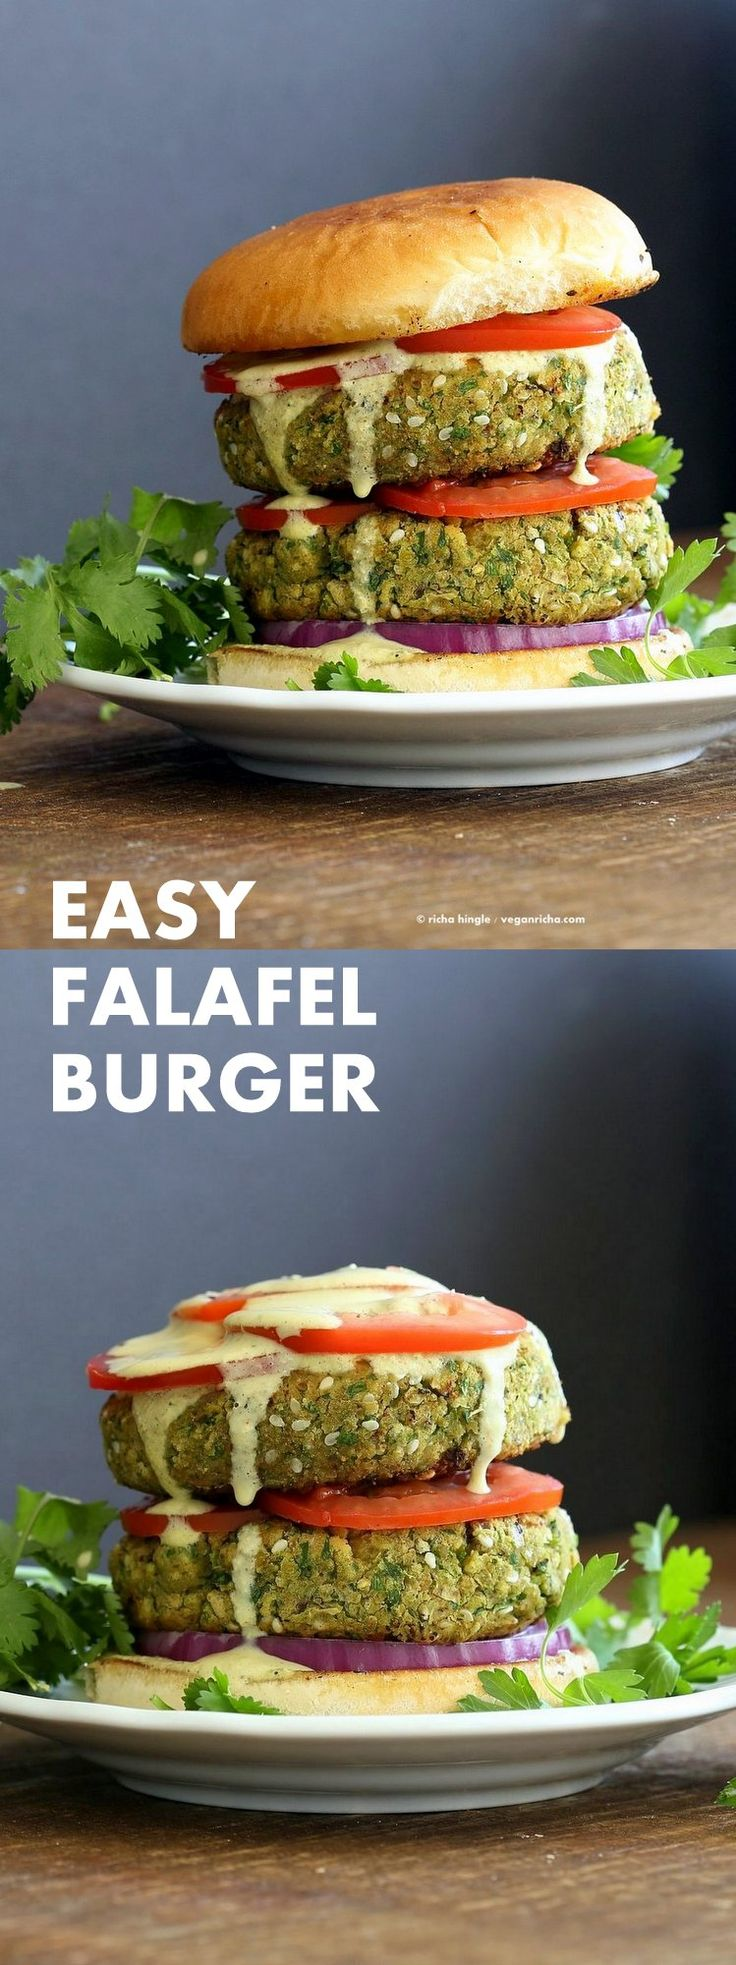 Easy Vegan Falafel Burger. Chickpea patties (OMIT all spices except garlic and cilantro, additionally OMIT sesame and oil, substitute citric acid for lemon flavor, and no sauce or toppings except lettuce/ mung bean sprouts for PHASE 1 Exzema Diet) | https://lomejordelaweb.es/